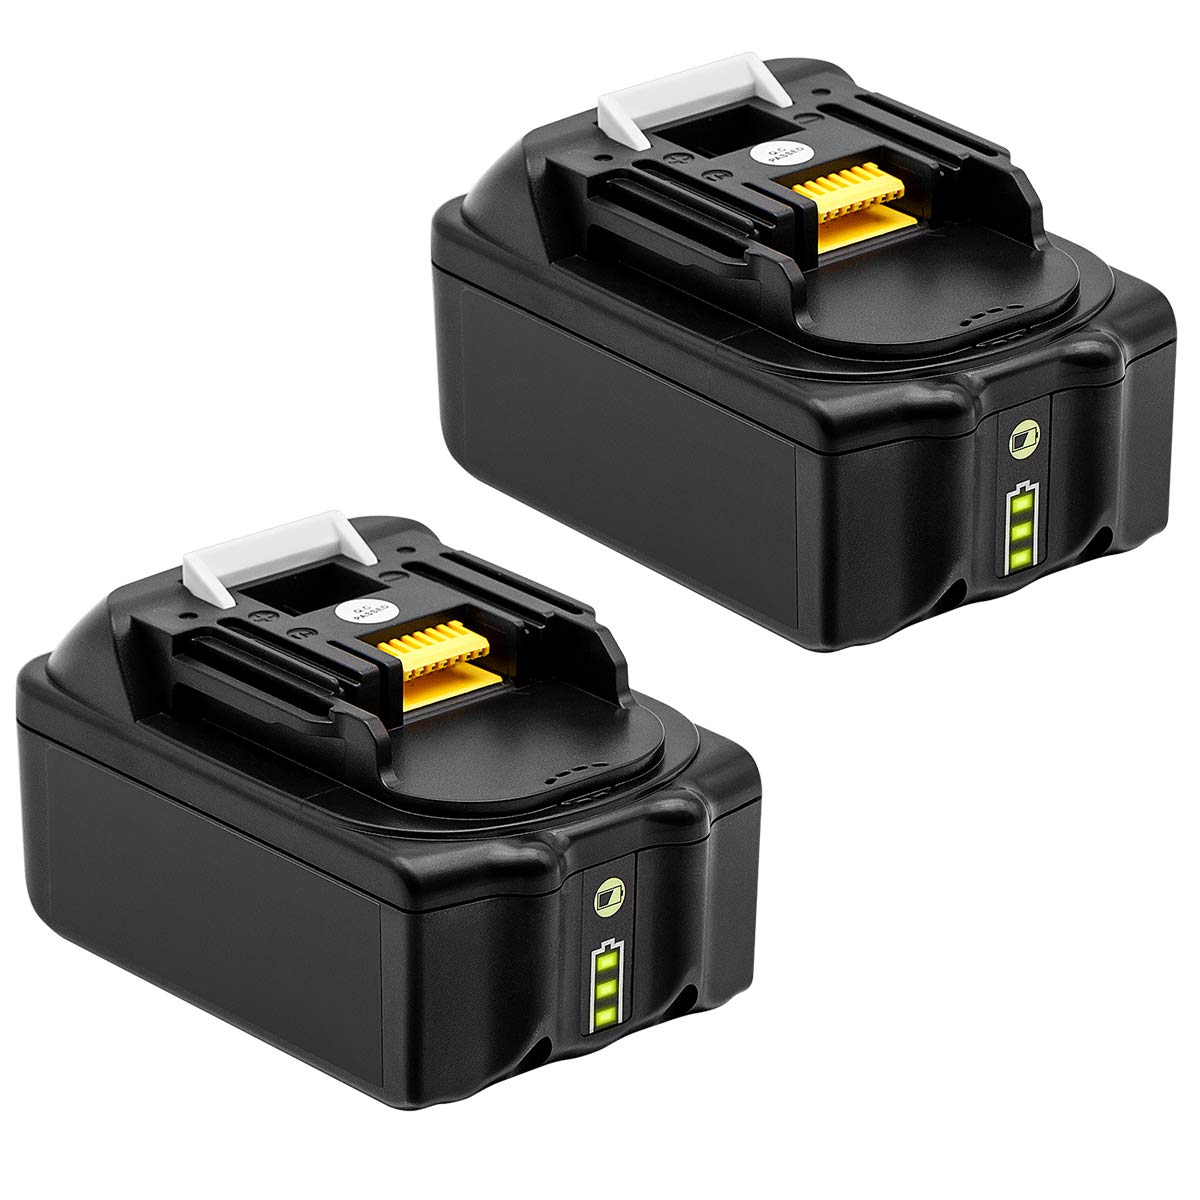 2PACK 6.0Ah BL1860B Replace for Makita 18V Battery with LED Indicator BL1860 BL1850 BL1840 BL1830 LXT-400 194204-5 Series Cordless Power Tools Battery